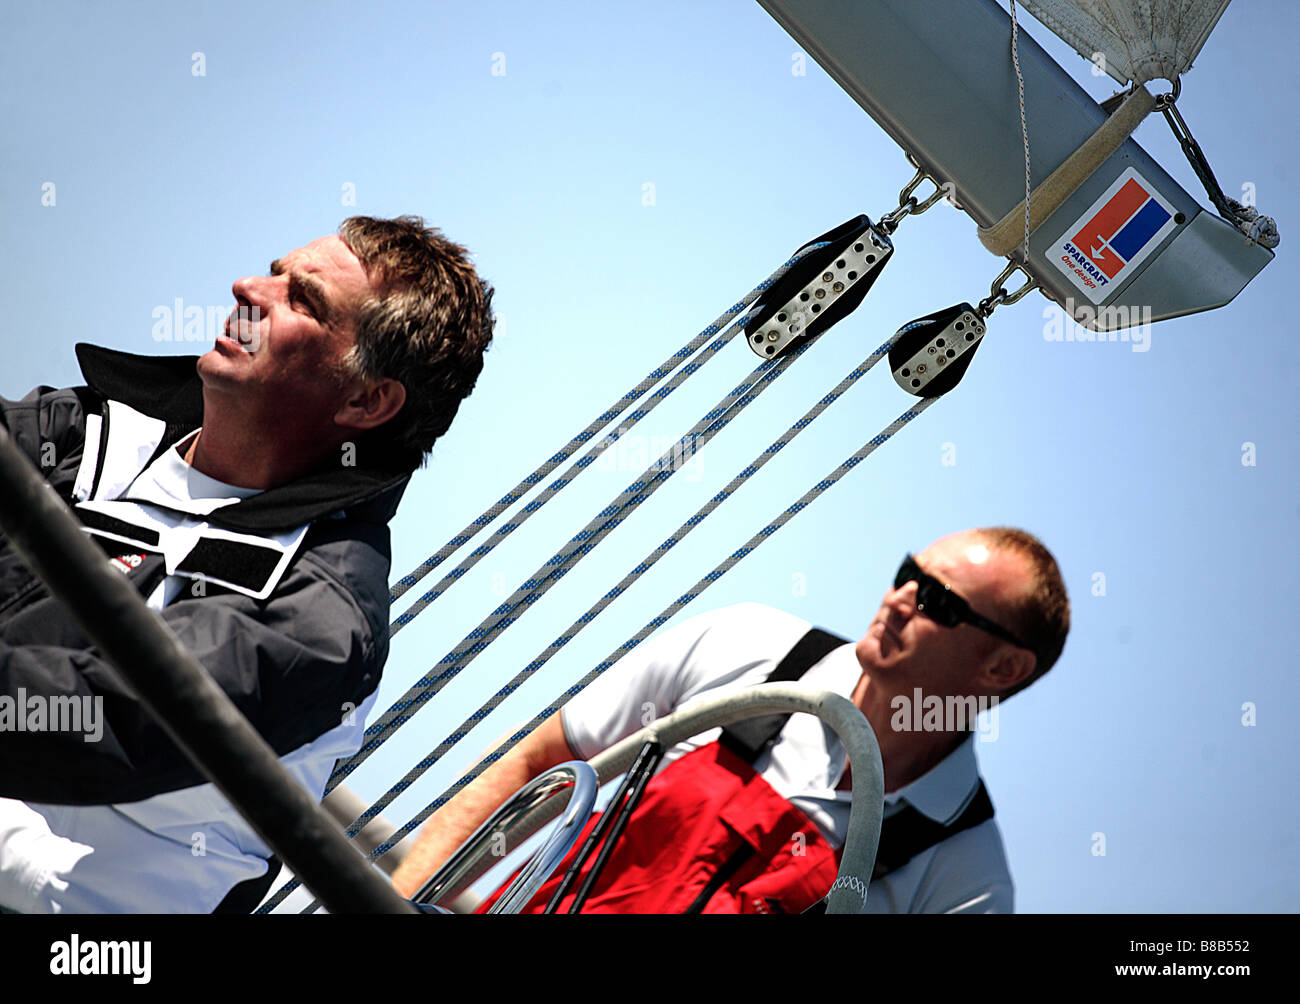 2 men,European,white sailing a yacht,it features rigging and is shot at a lw angle. - Stock Image